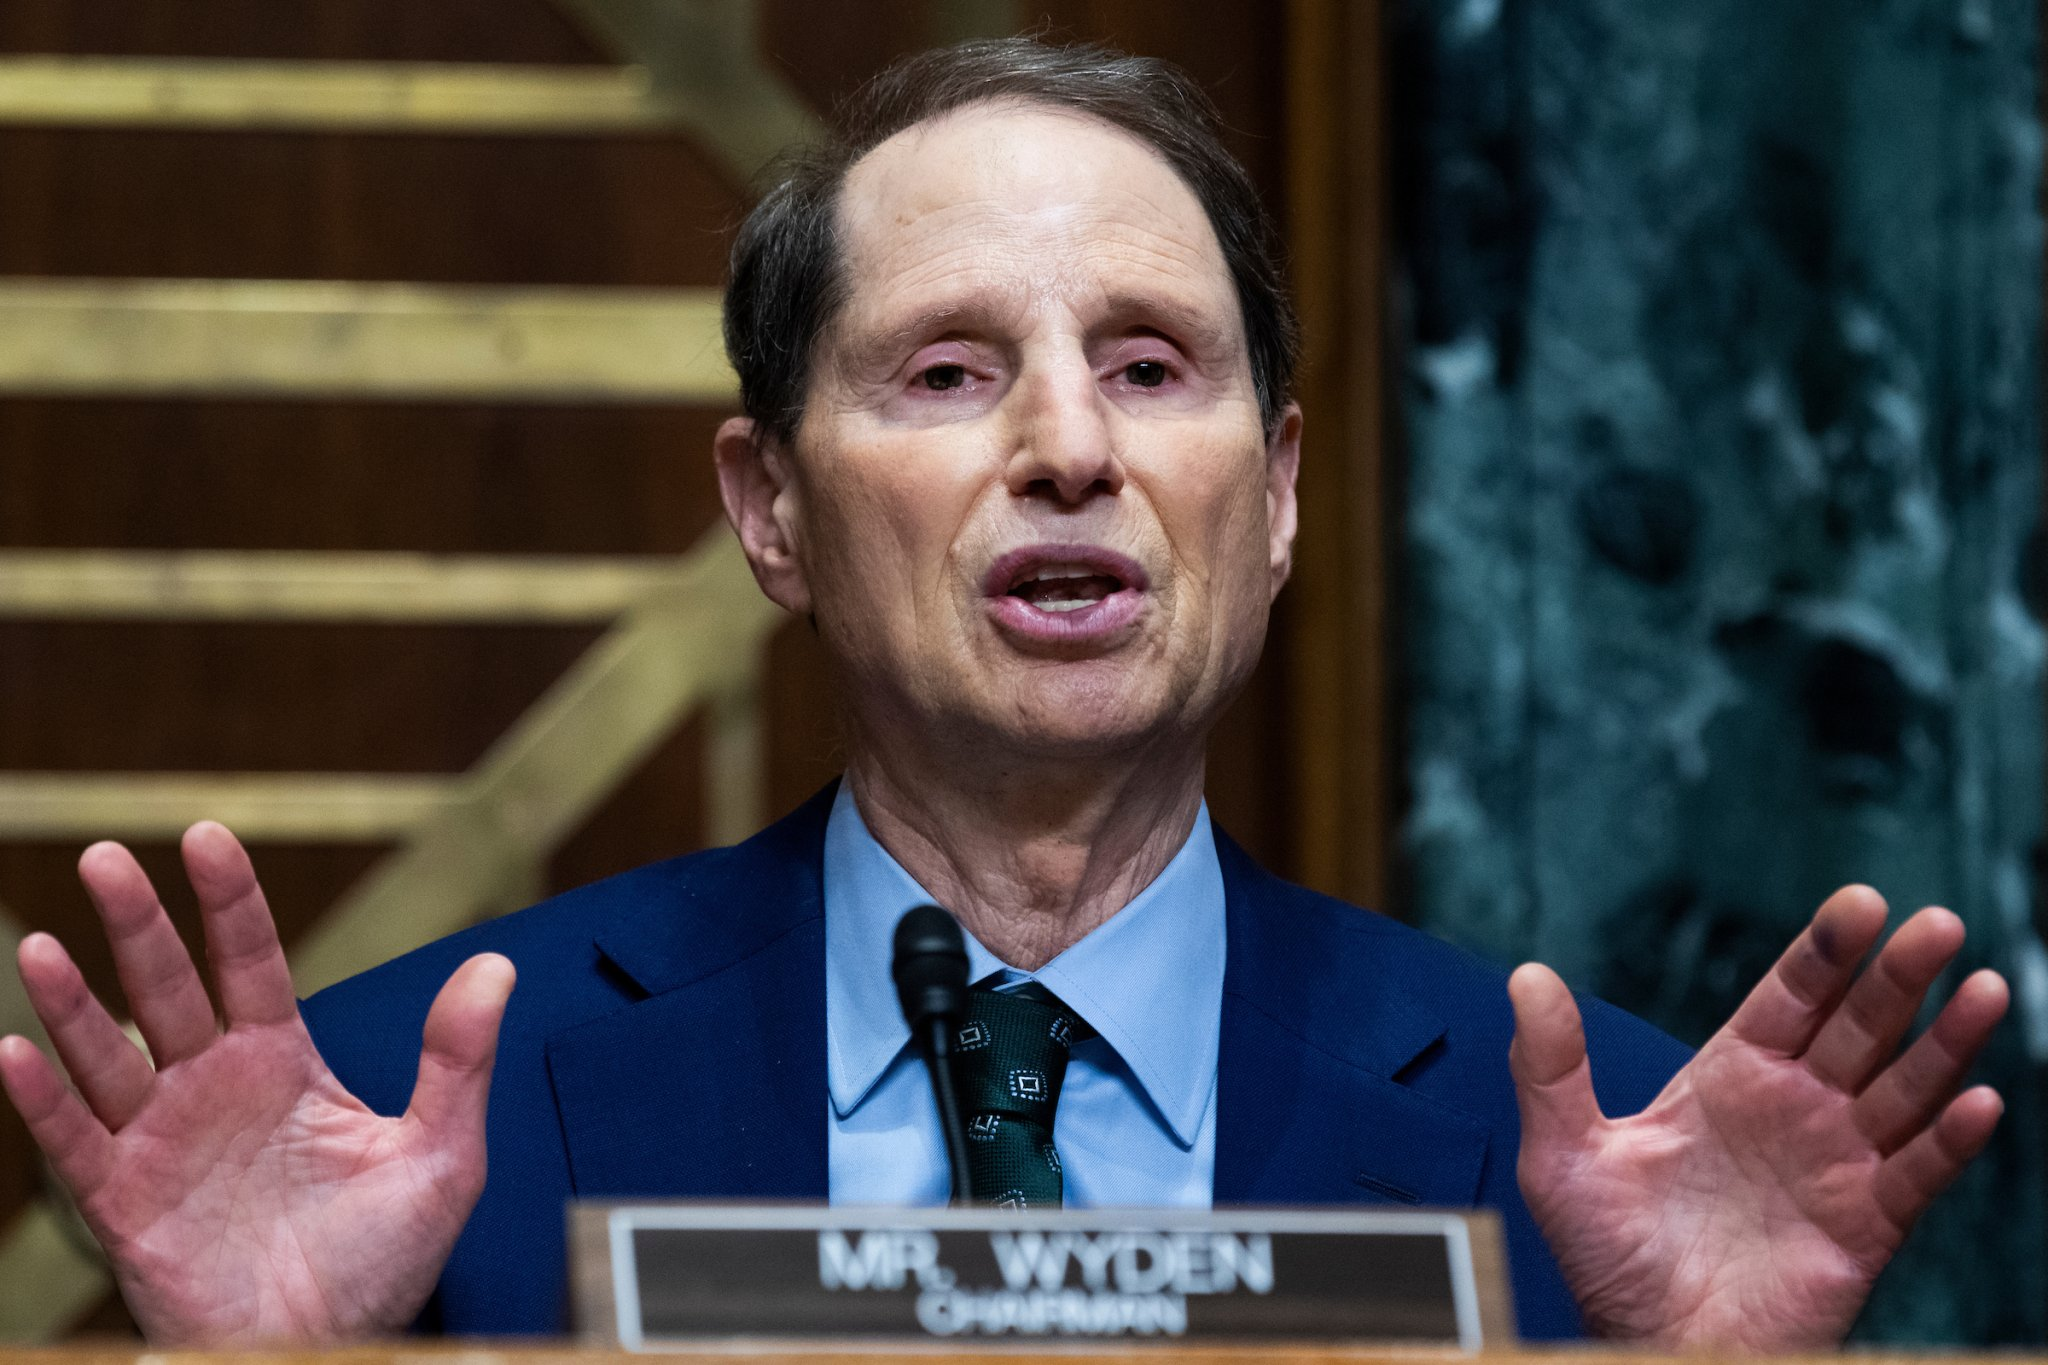 Wyden wants tweaks to infrastructure bill's cryptocurrency rules - Roll Call